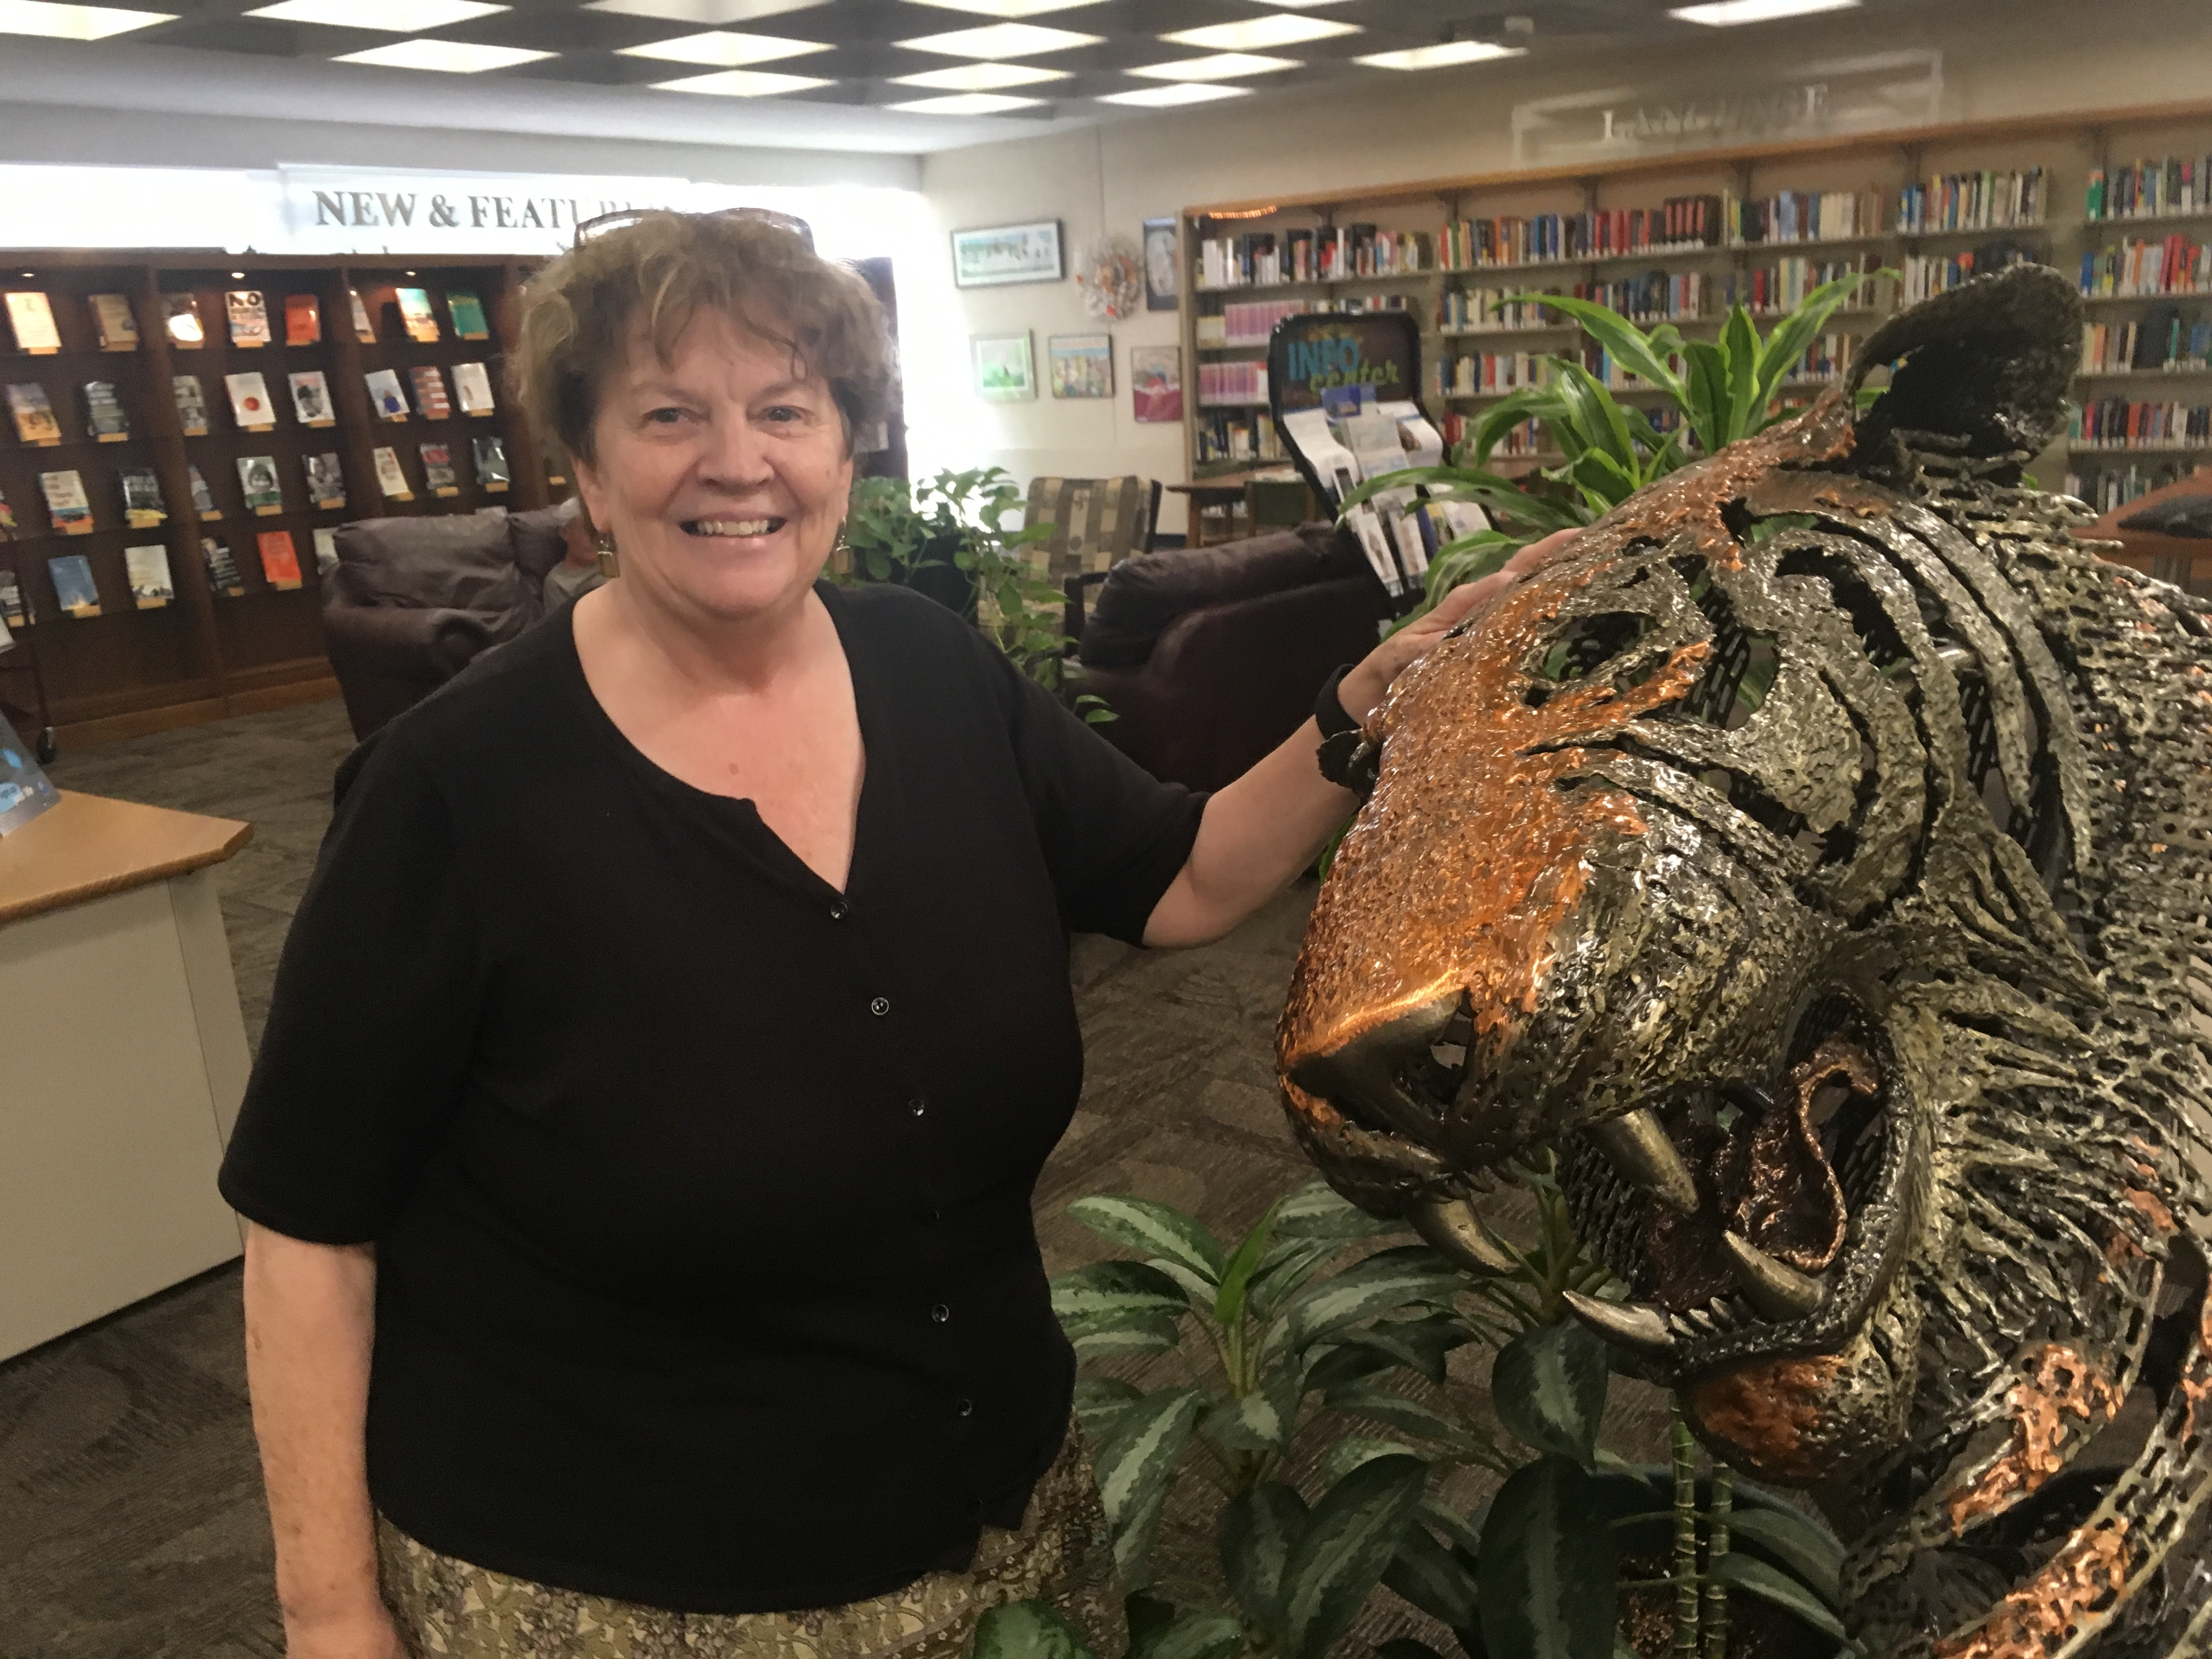 Janet McKenney with tiger sculpture at the Maine State Library